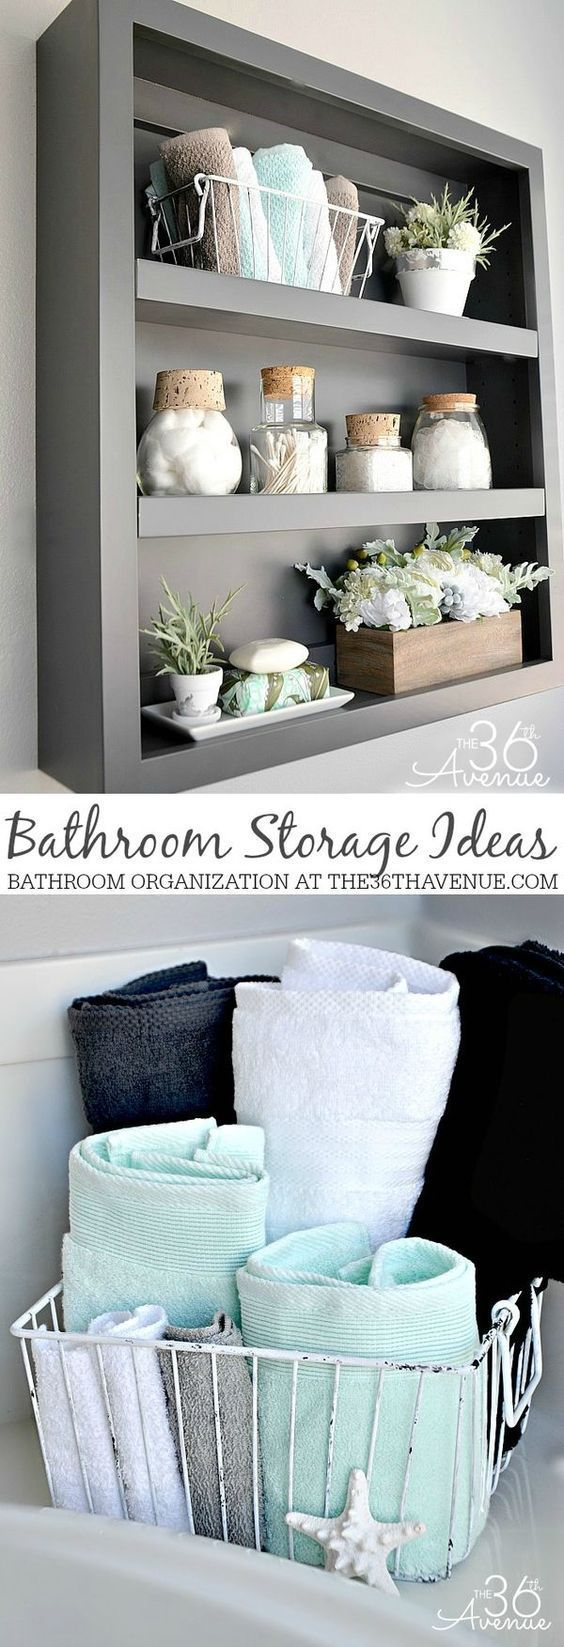 Small Bathrooms Organization best 25+ small bathroom decorating ideas on pinterest | bathroom